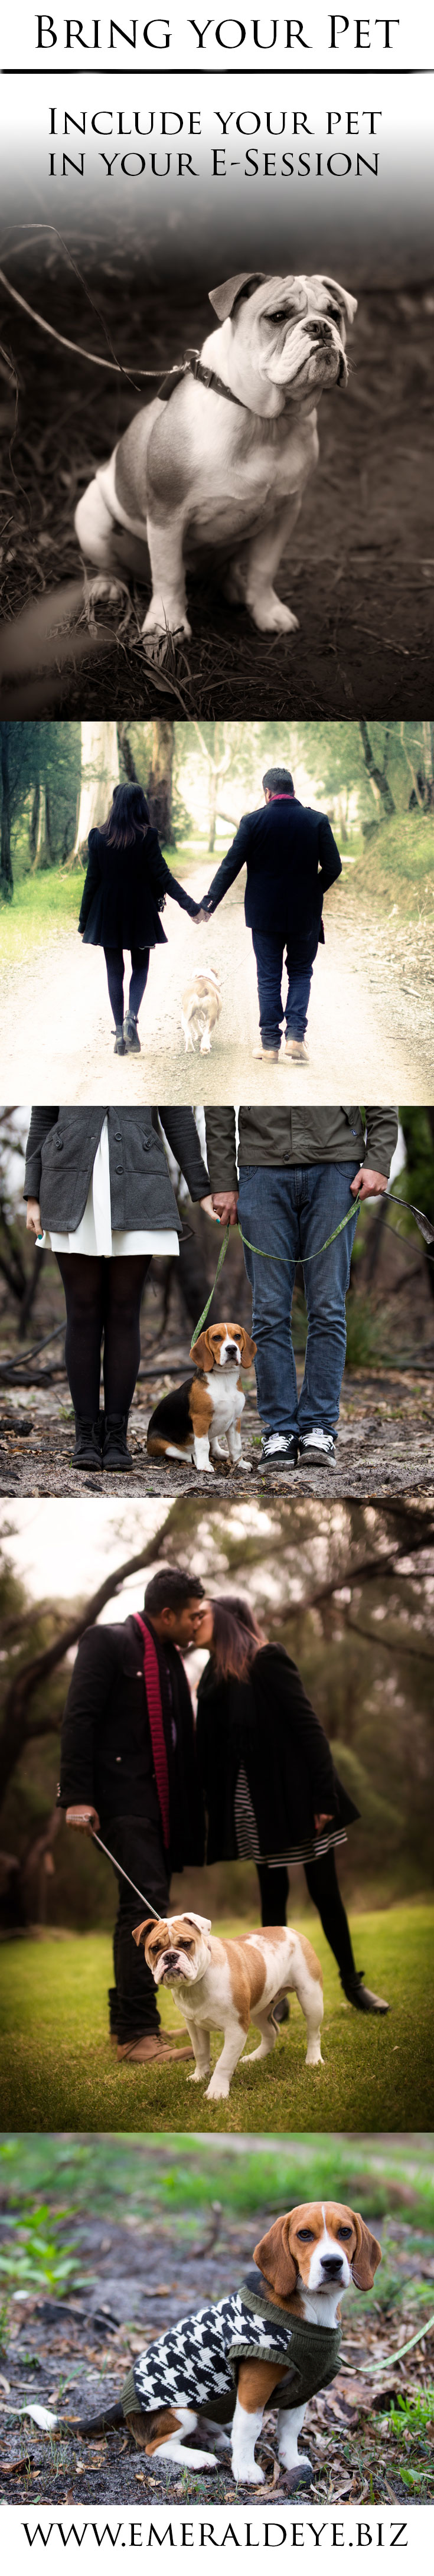 Include your pet in your E-Session. Include your Dog, Cat, Ferret... If they are a loved member of your family, they make a cute addition to an engagement shoot.